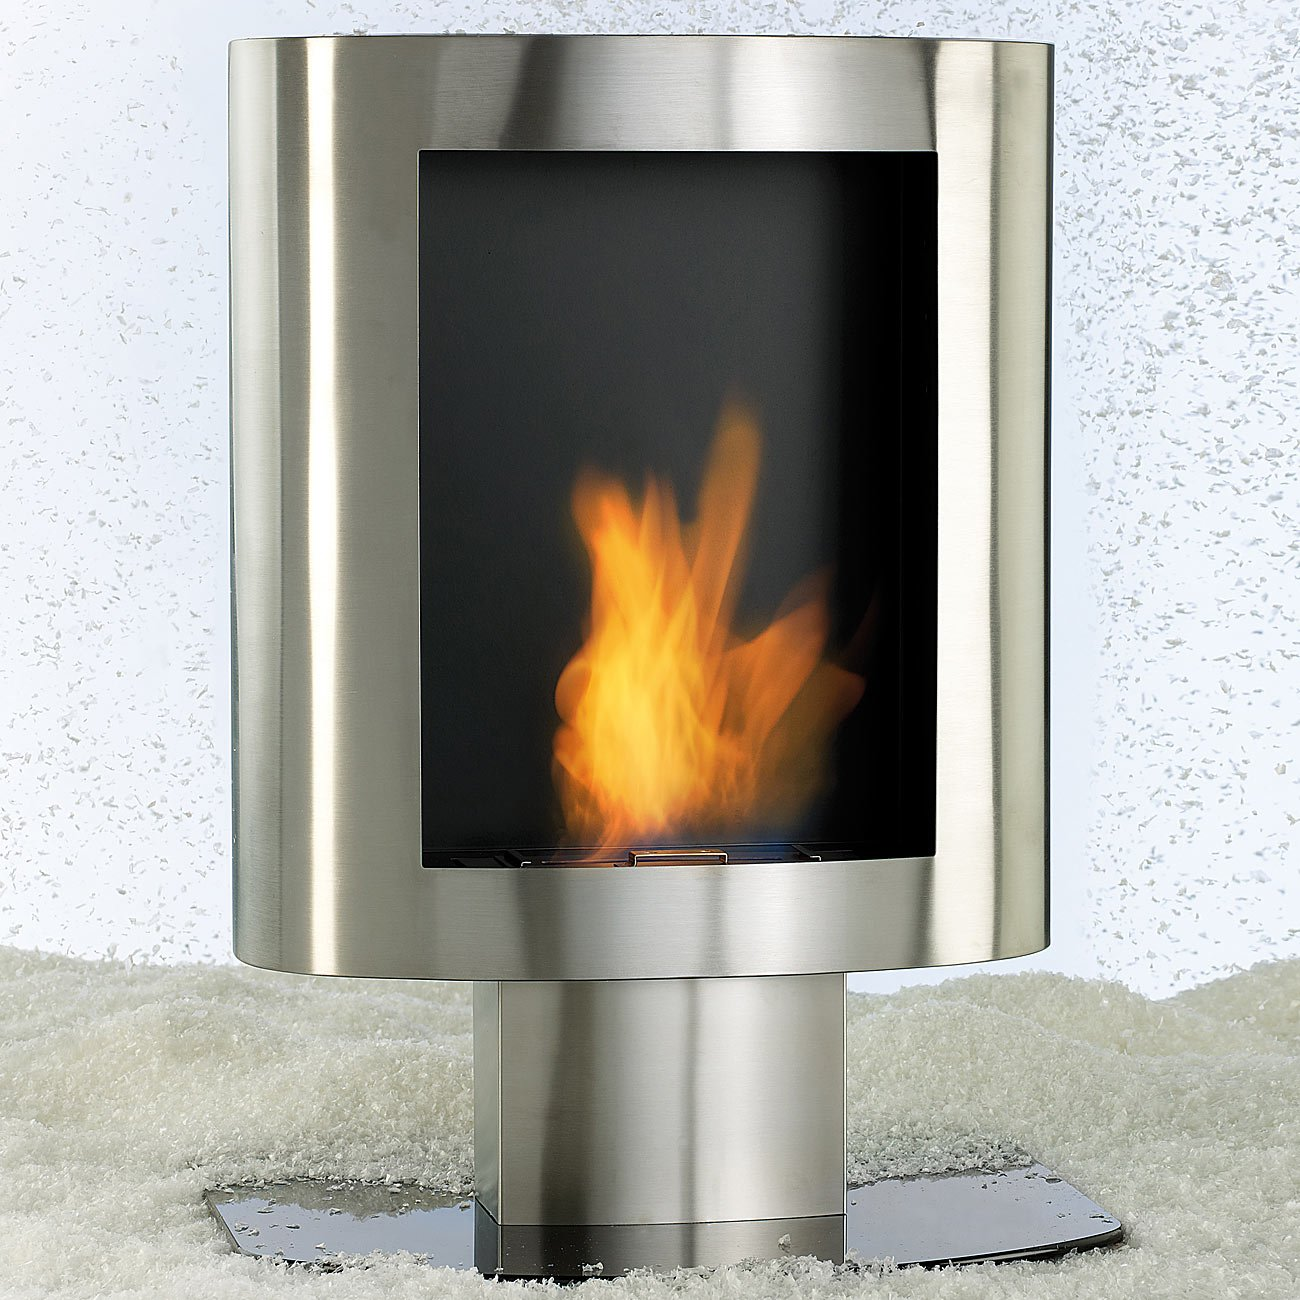 Awesome Carlo Milano Decorative Stove Bio Ethanol Stainless Steel For Wall  And Floor: Amazon.